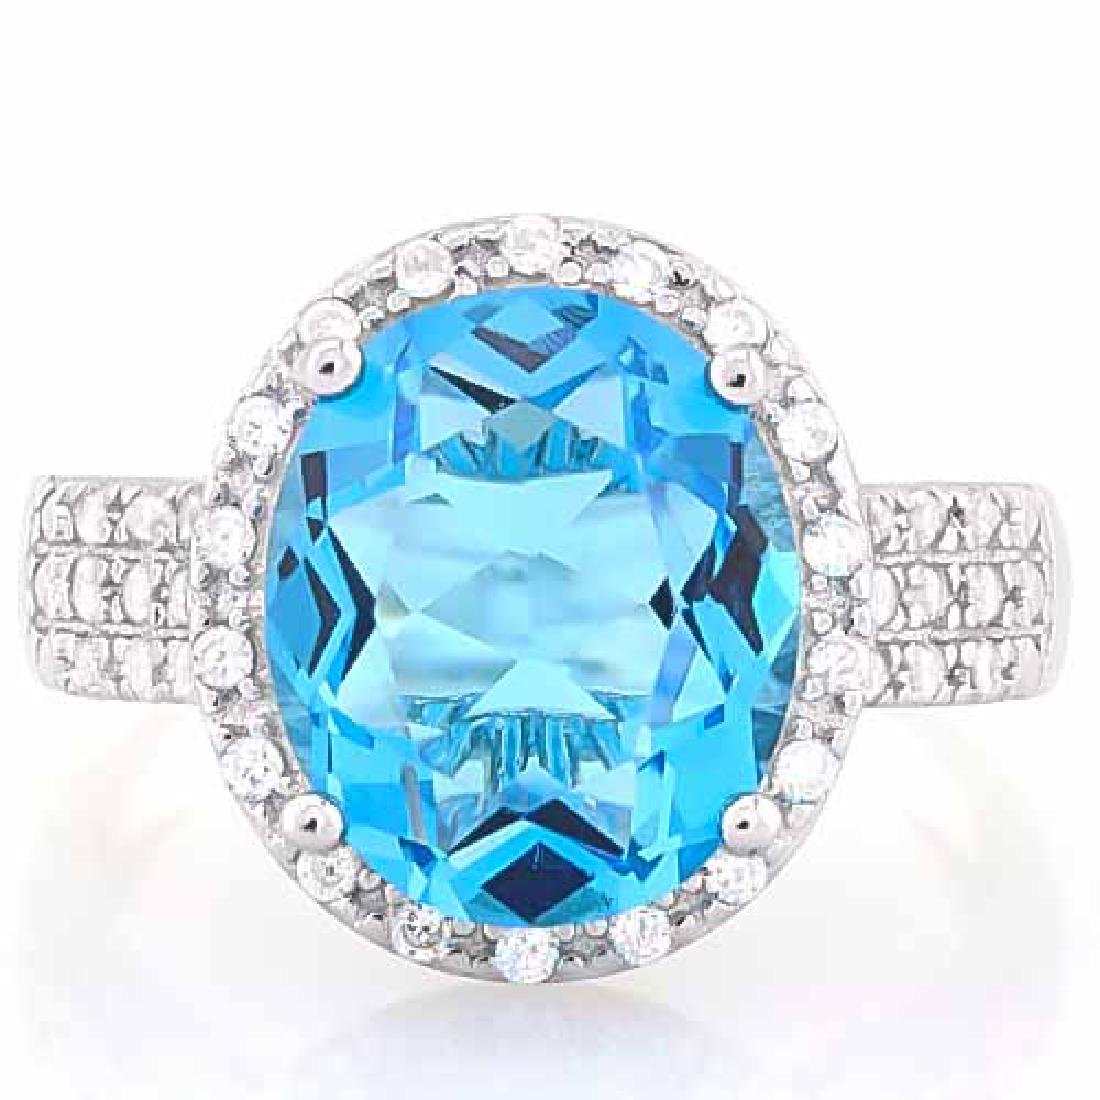 5 CARAT CREATED SWISS TOPAZ & 4 CARAT (40 PCS) FLAWLESS